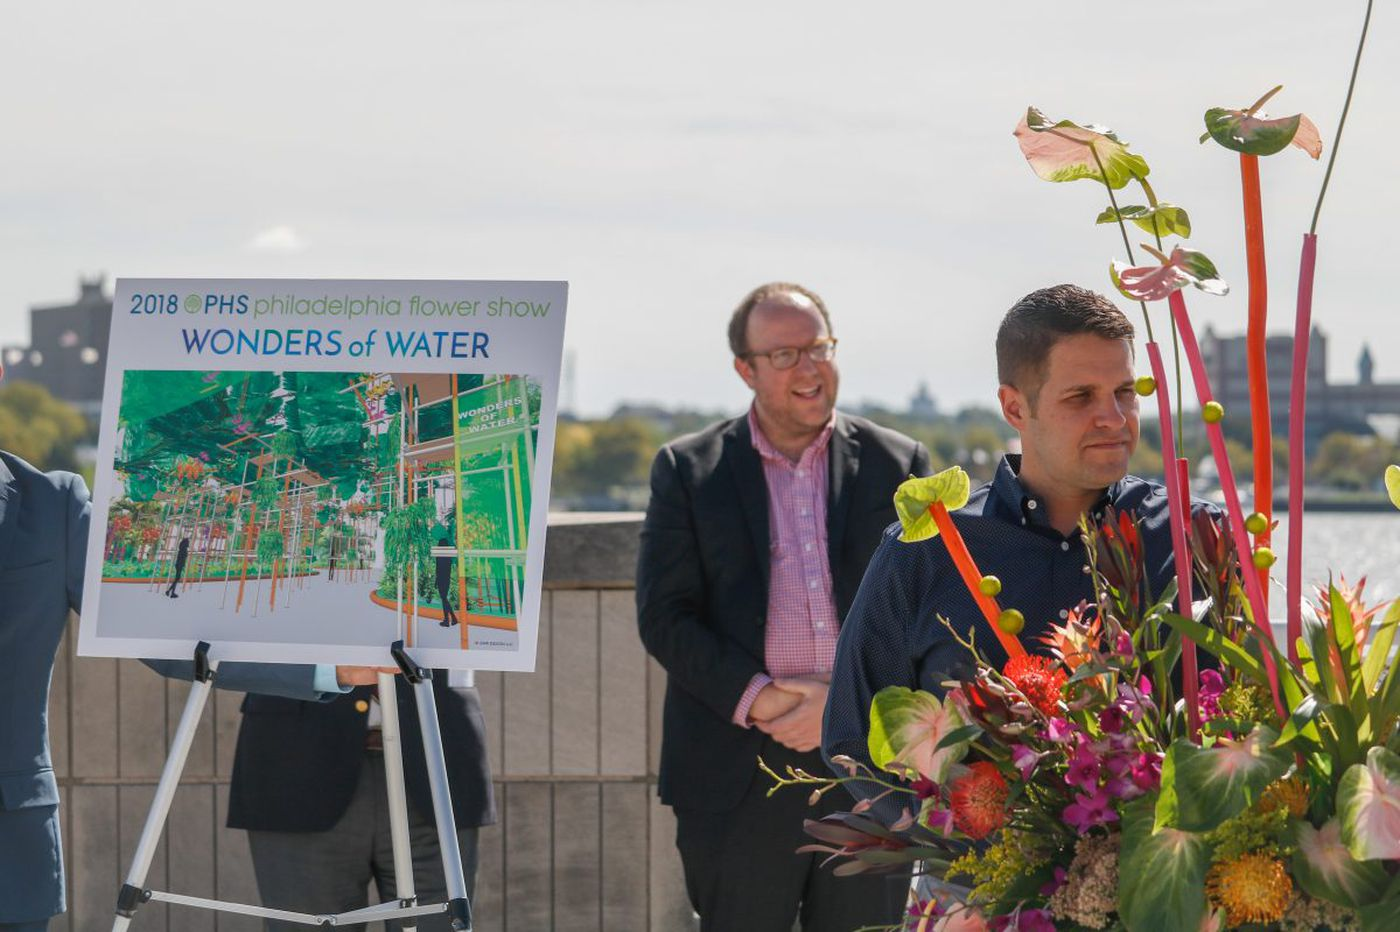 Details revealed about the 2018 Flower Show